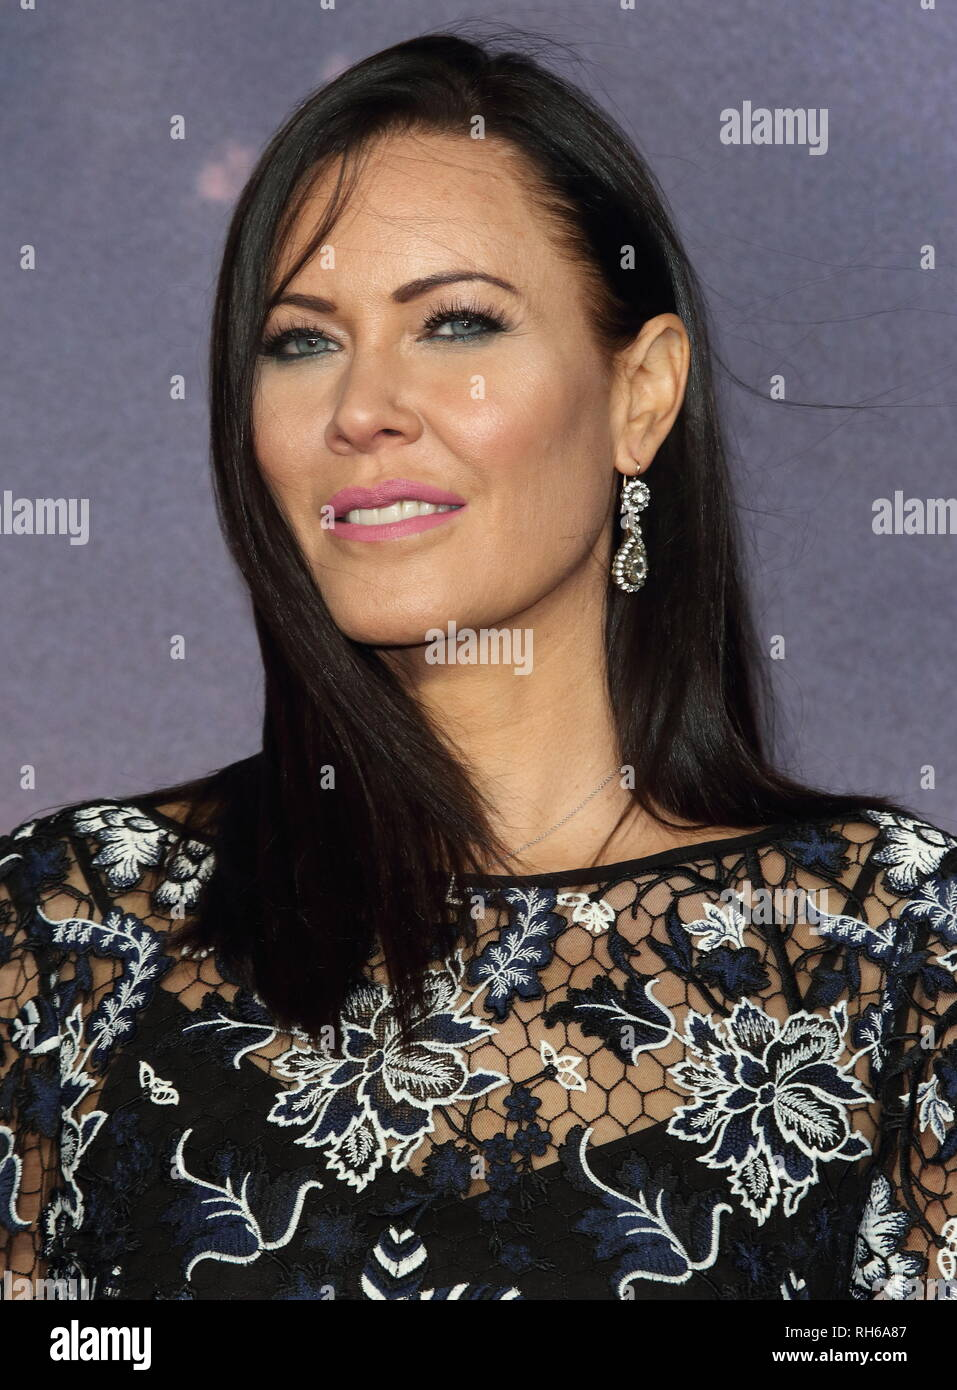 Linzi Stoppard attends the 'Alita: Battle Angel' World Premiere at the Odeon Luxe in Leicester Square. - Stock Image